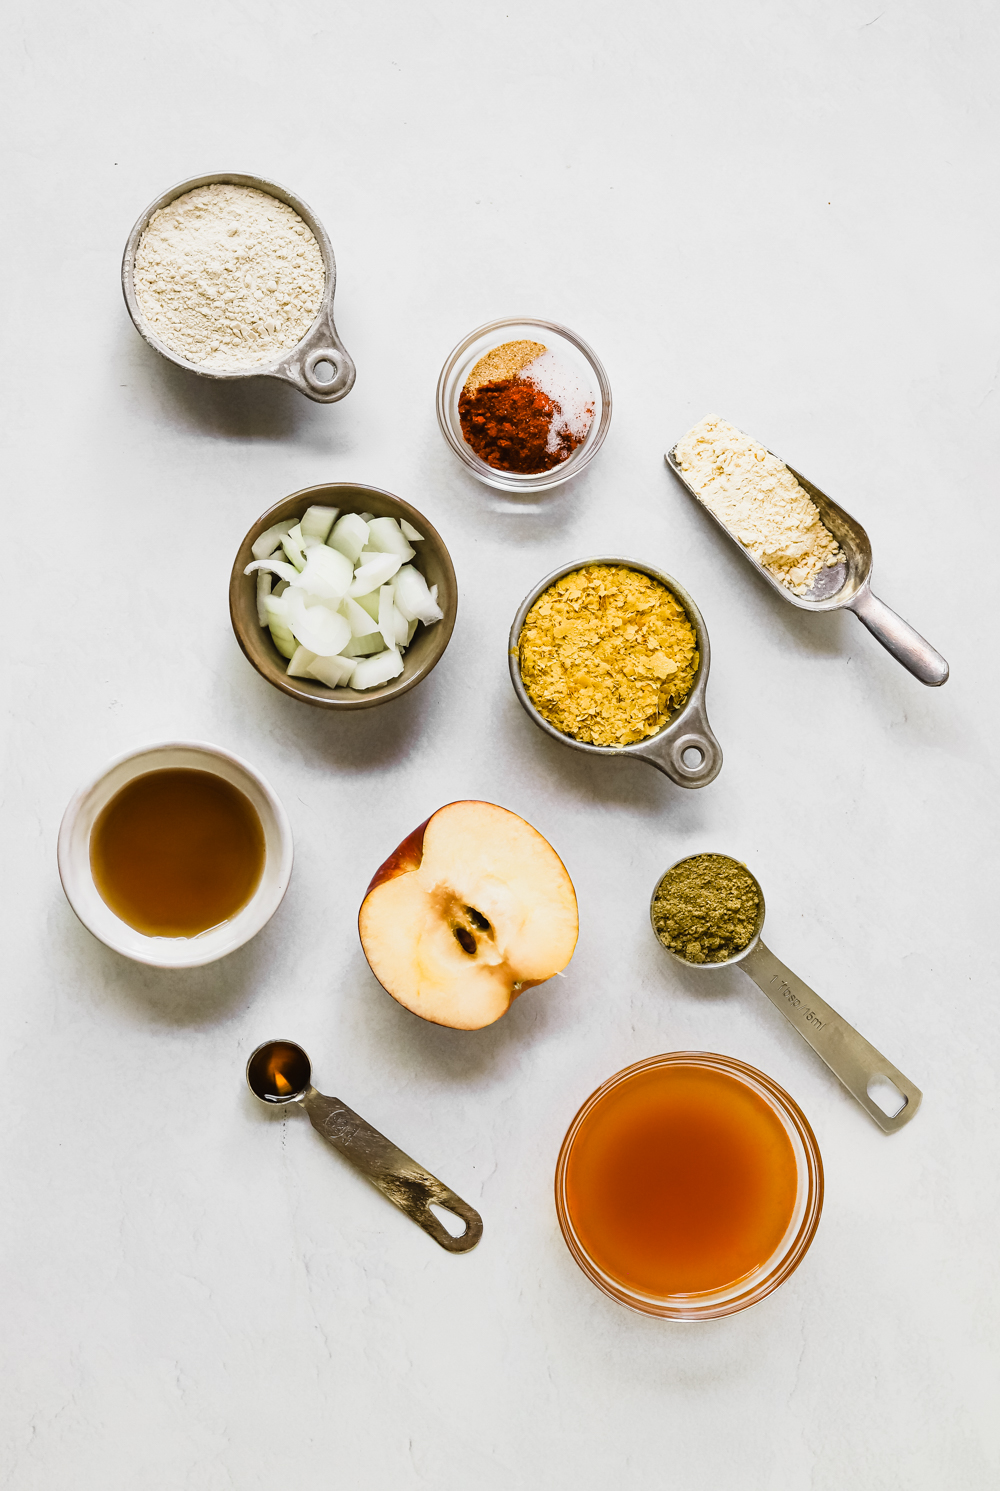 Ingredients to make seitan sausage: vital wheat gluten, chickpea flour, nutritional yeast, vegetable broth, liquid smoke, maple syrup, onions, sage, and spices.